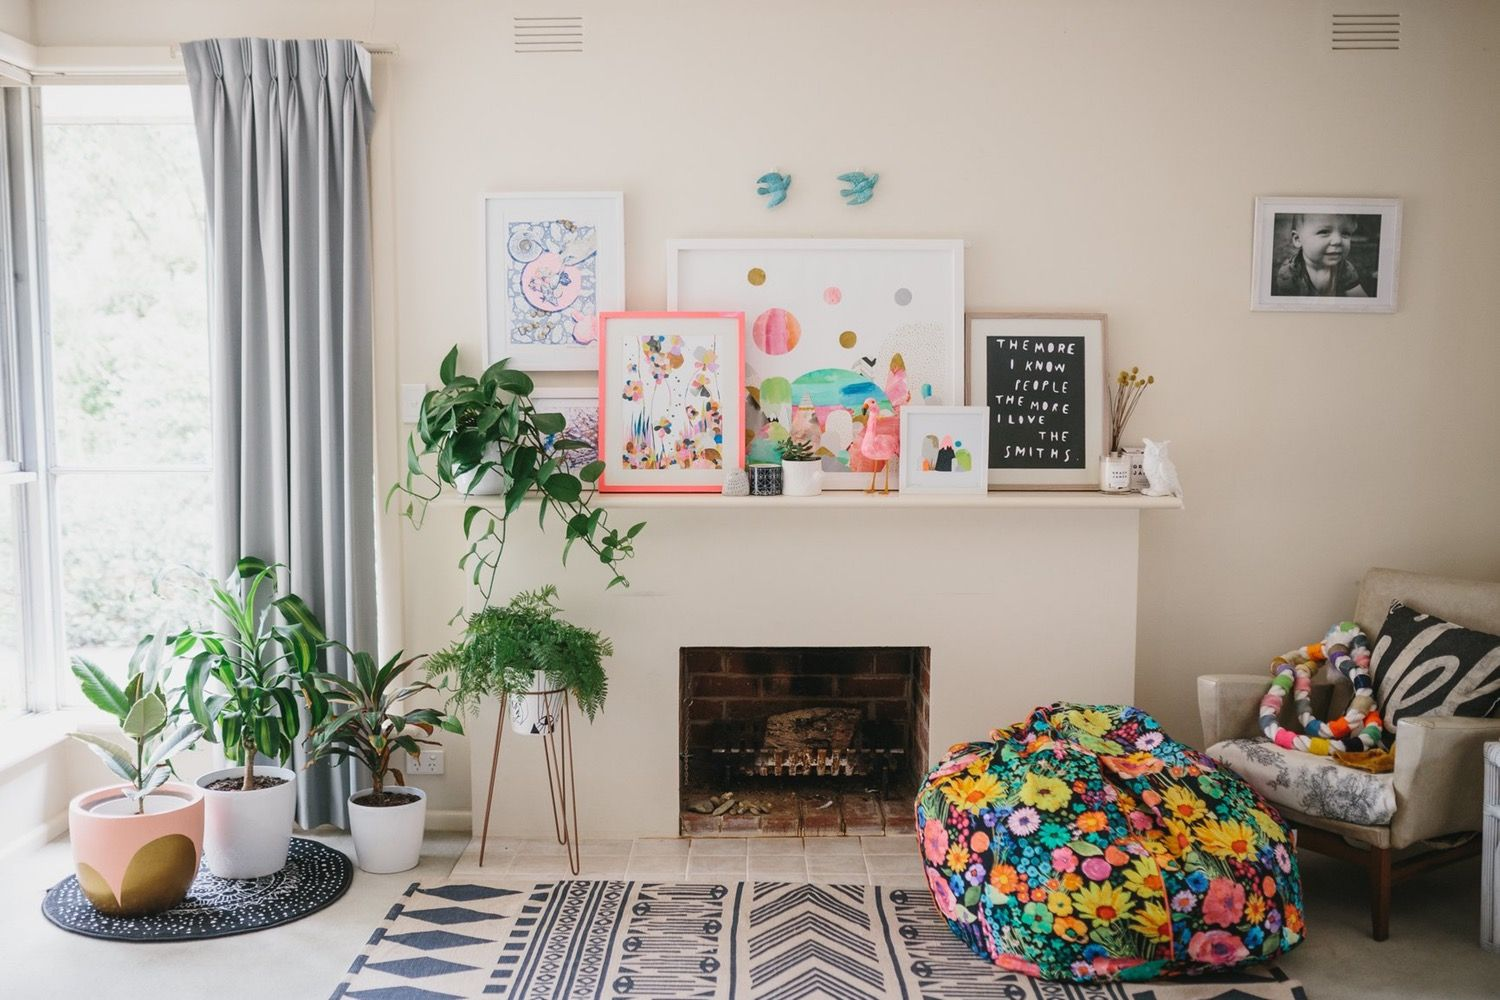 Layering A Rug Over Carpet Expert Advice On How To Make It Work Rug Over Carpet Living Room Carpet Layered Rugs #rug #on #top #of #carpet #living #room